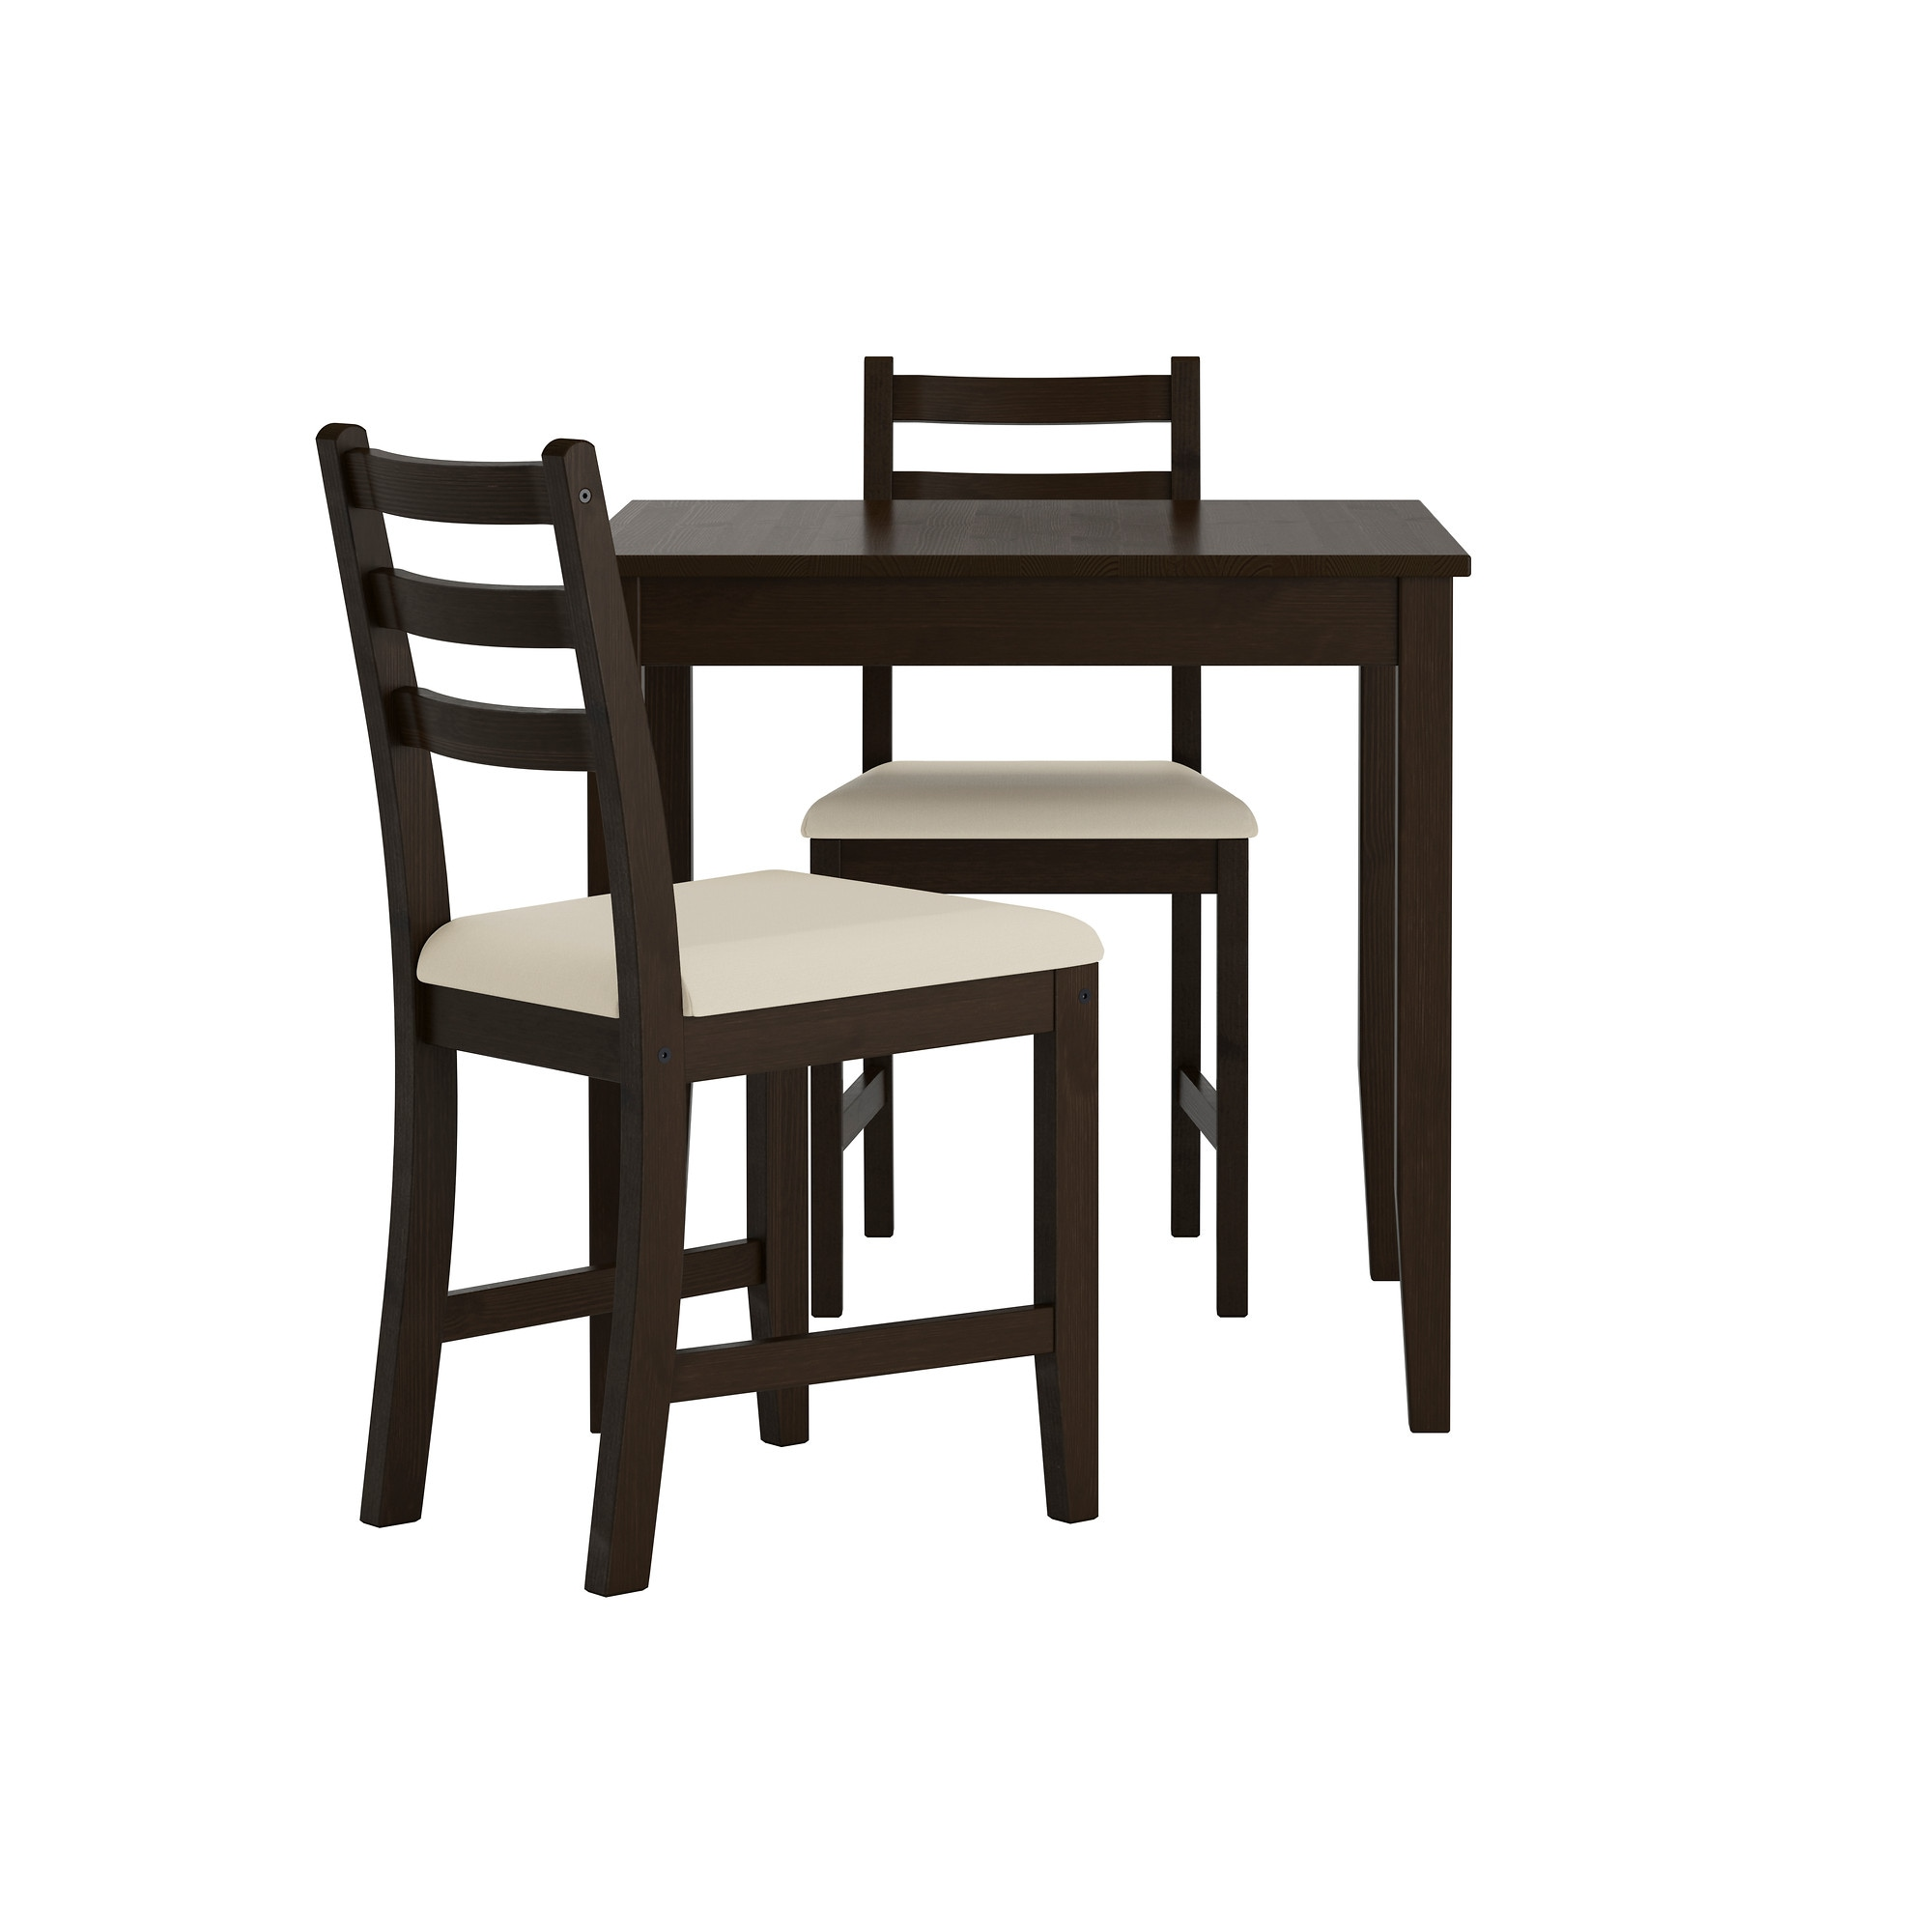 LERHAMN Table and 2 chairs IKEA